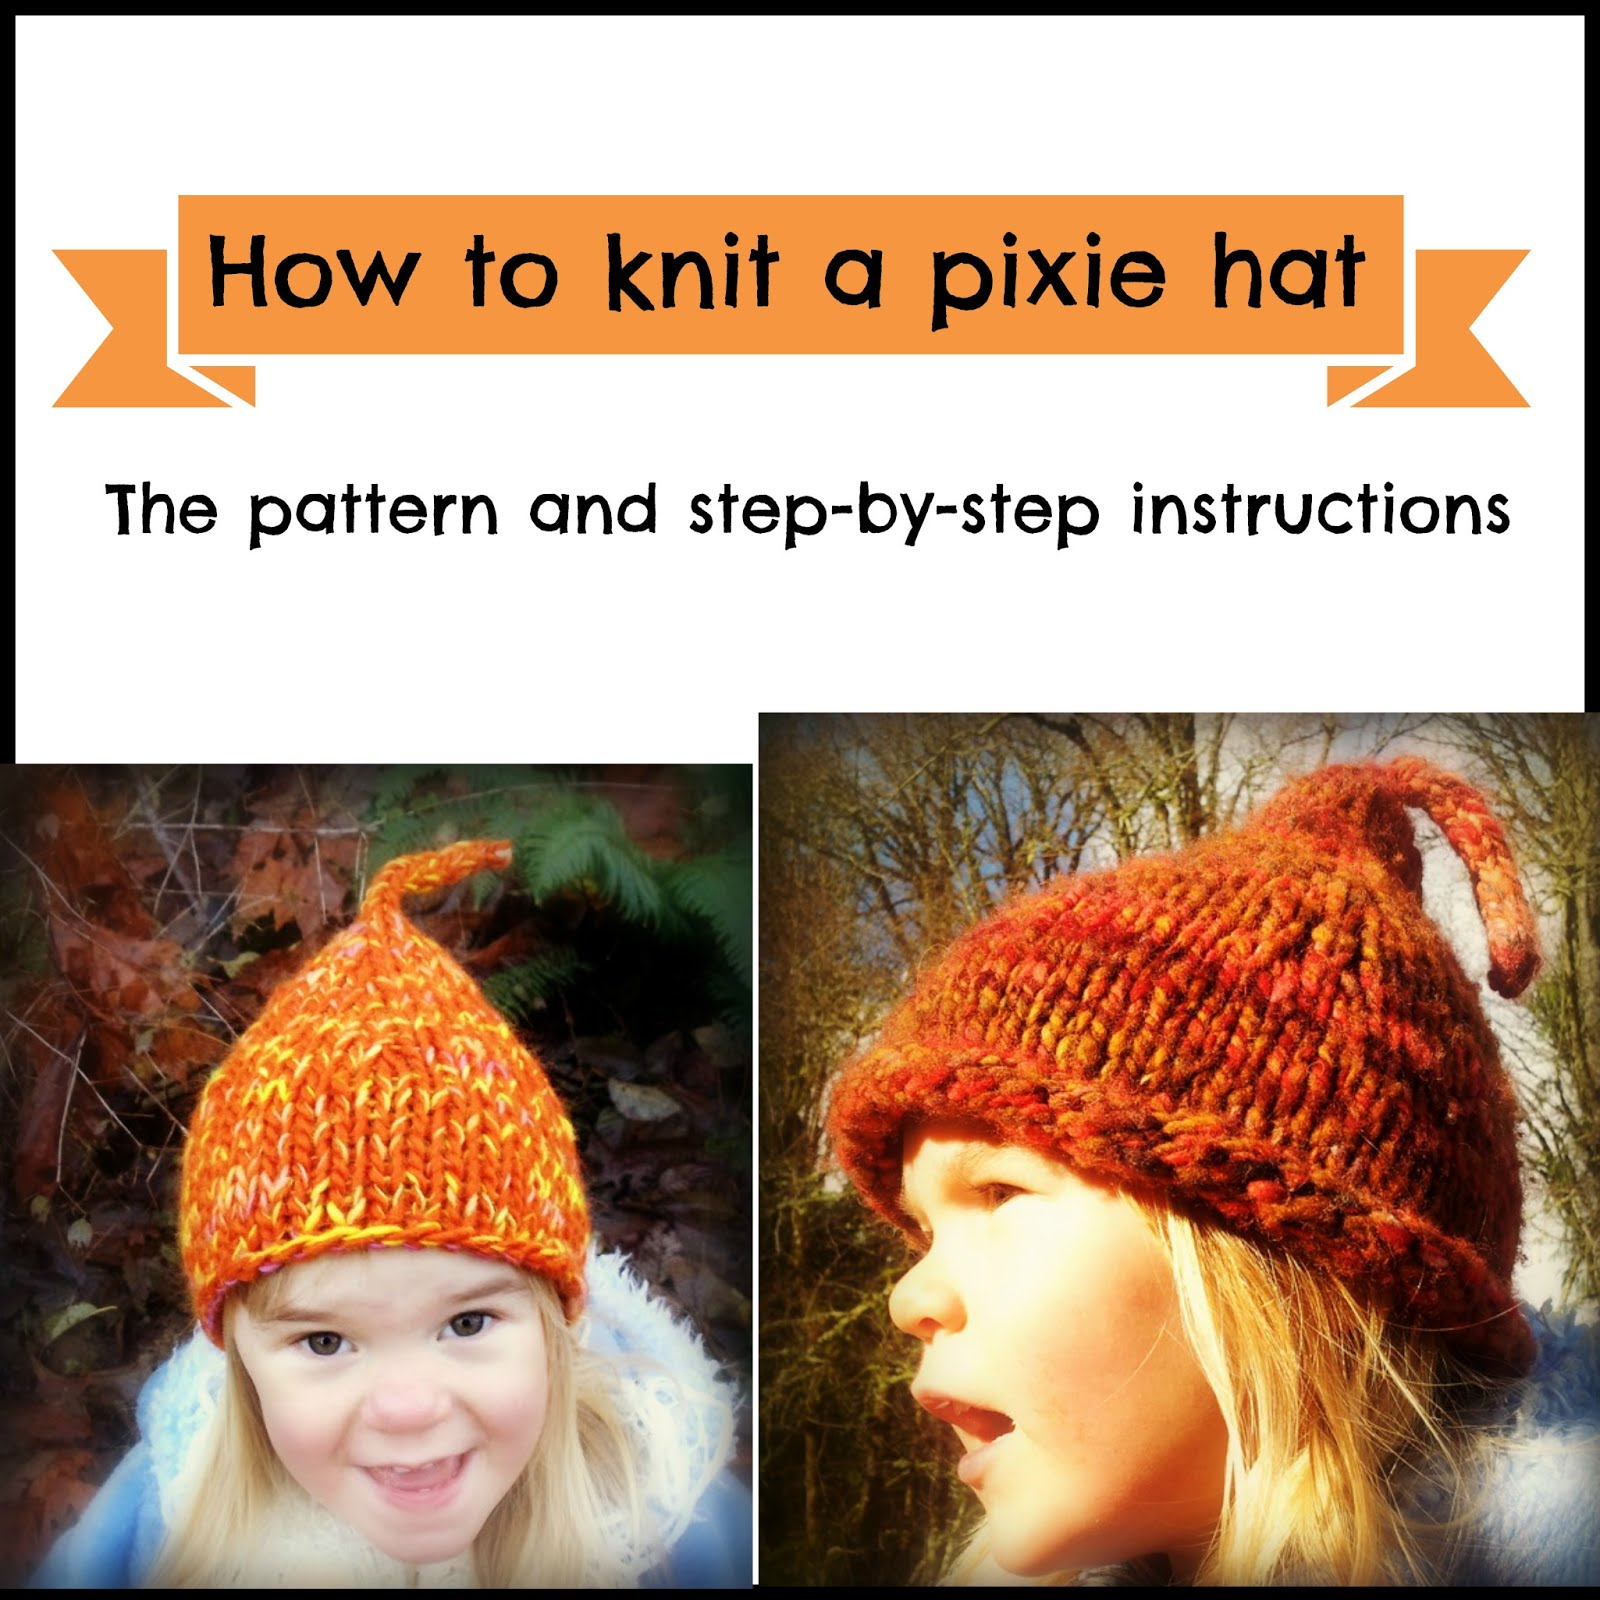 How to knit a pixi hat